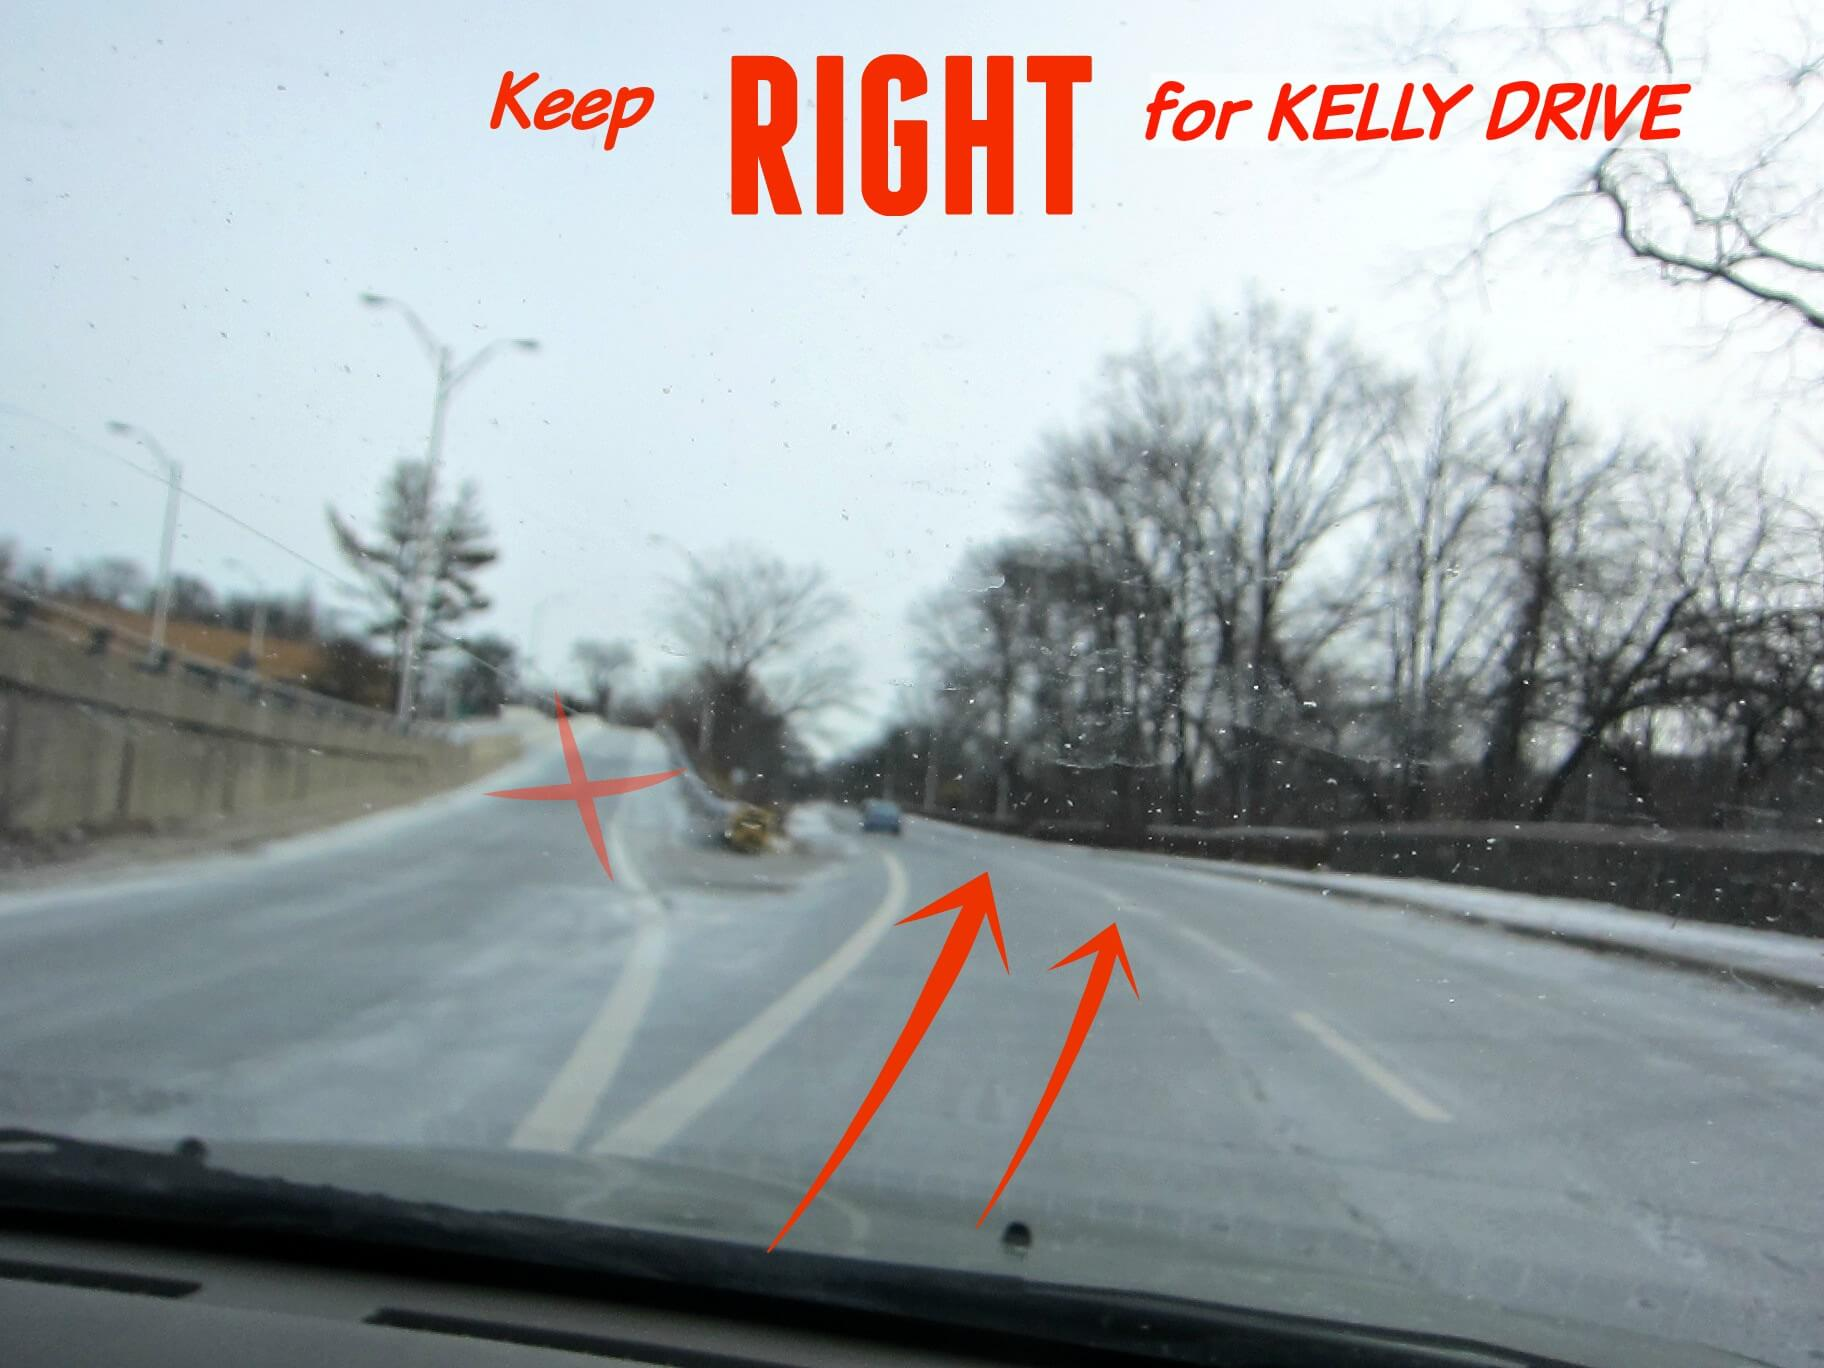 East Falls Local Lincoln Drive Closed -- Keep right to Kelly Drive